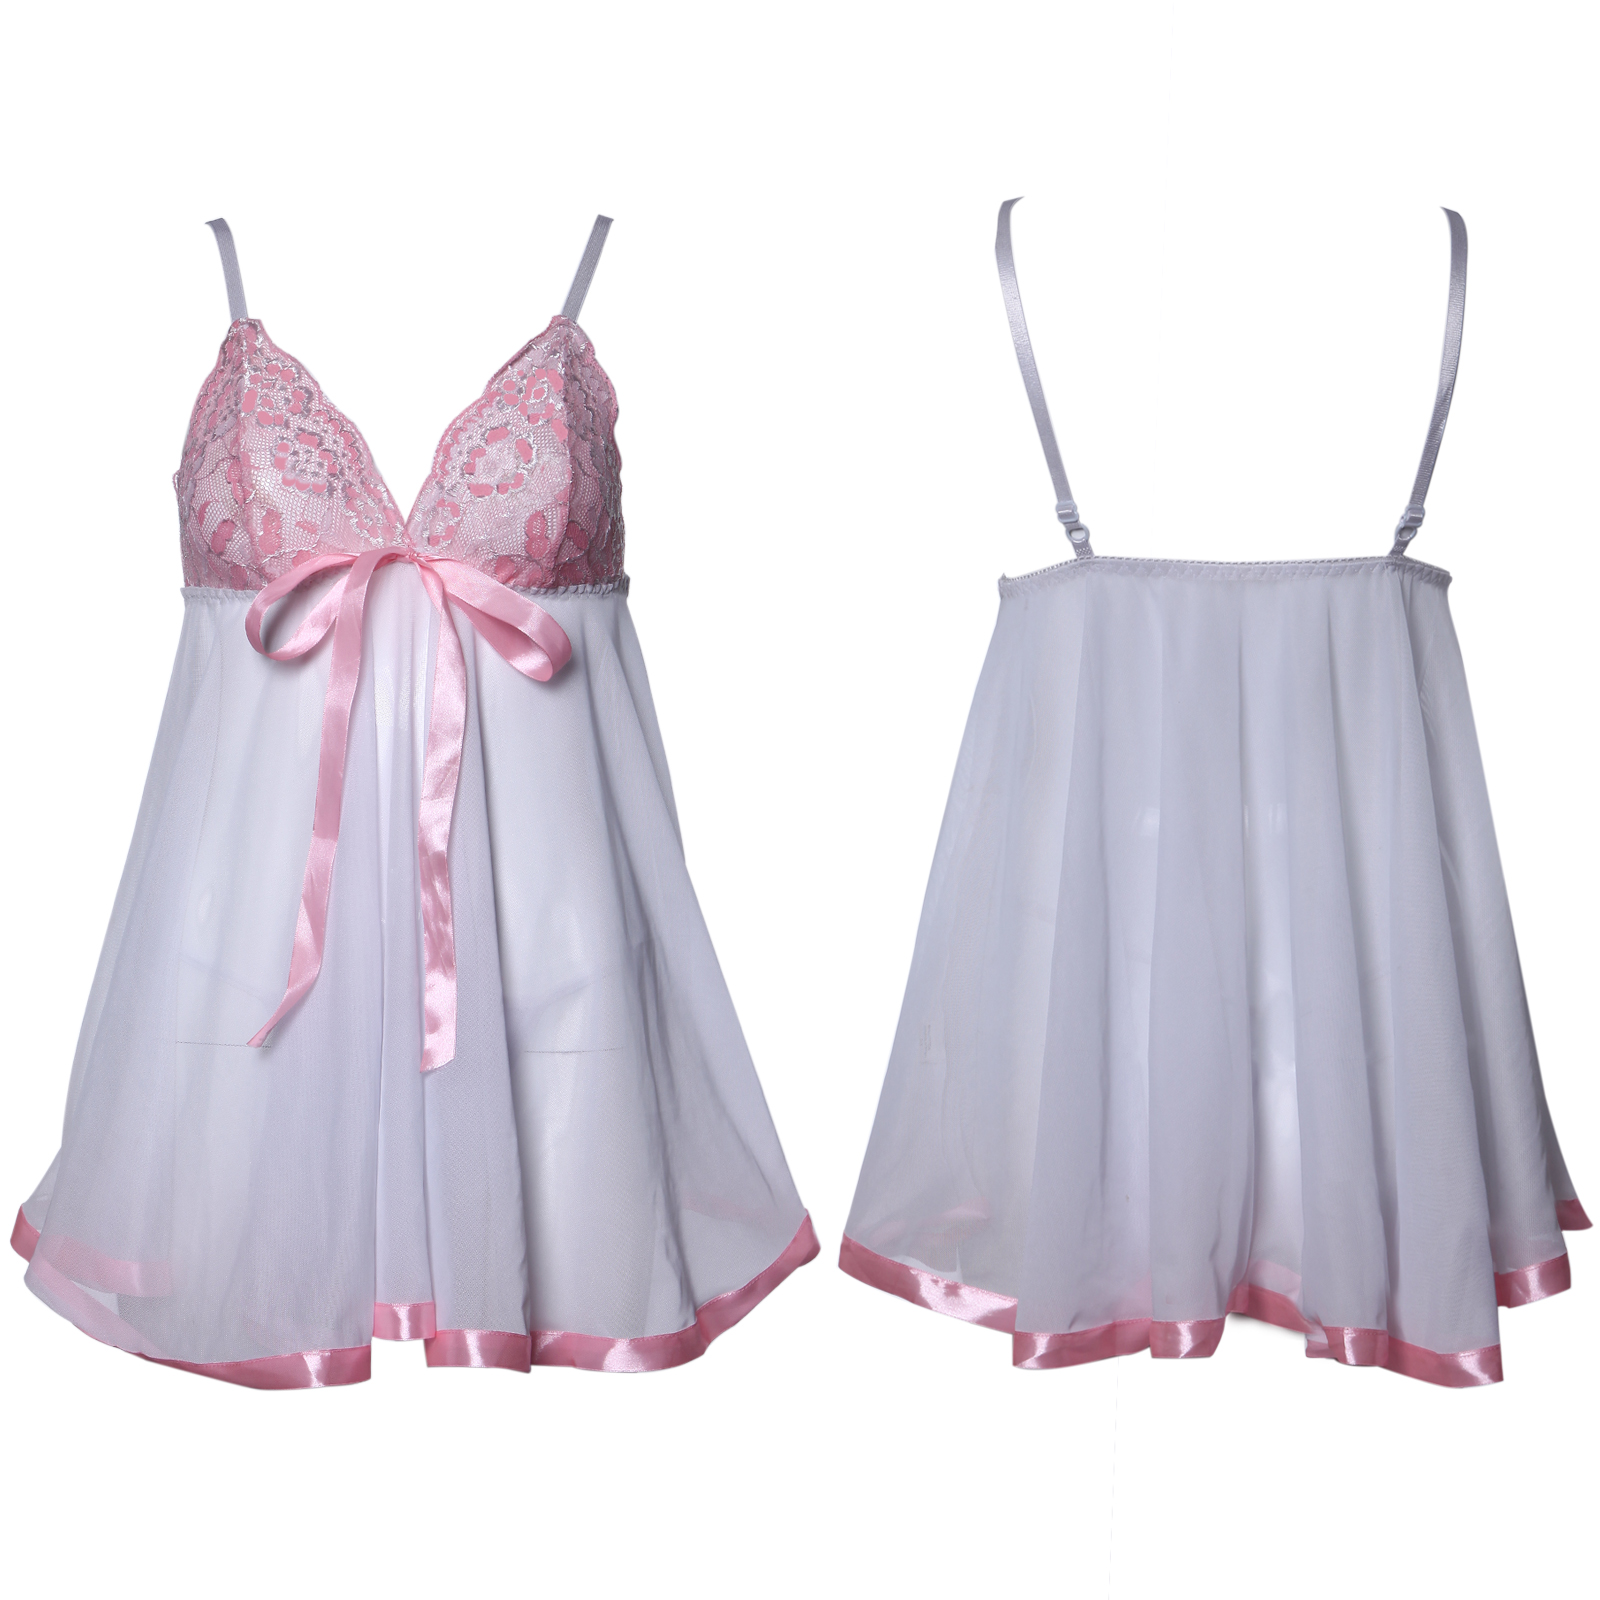 Sexy-Embroidered-Lace-Babydoll-Chemise-Regular-Plus-Size-8-10-12-14-16-22-24-26